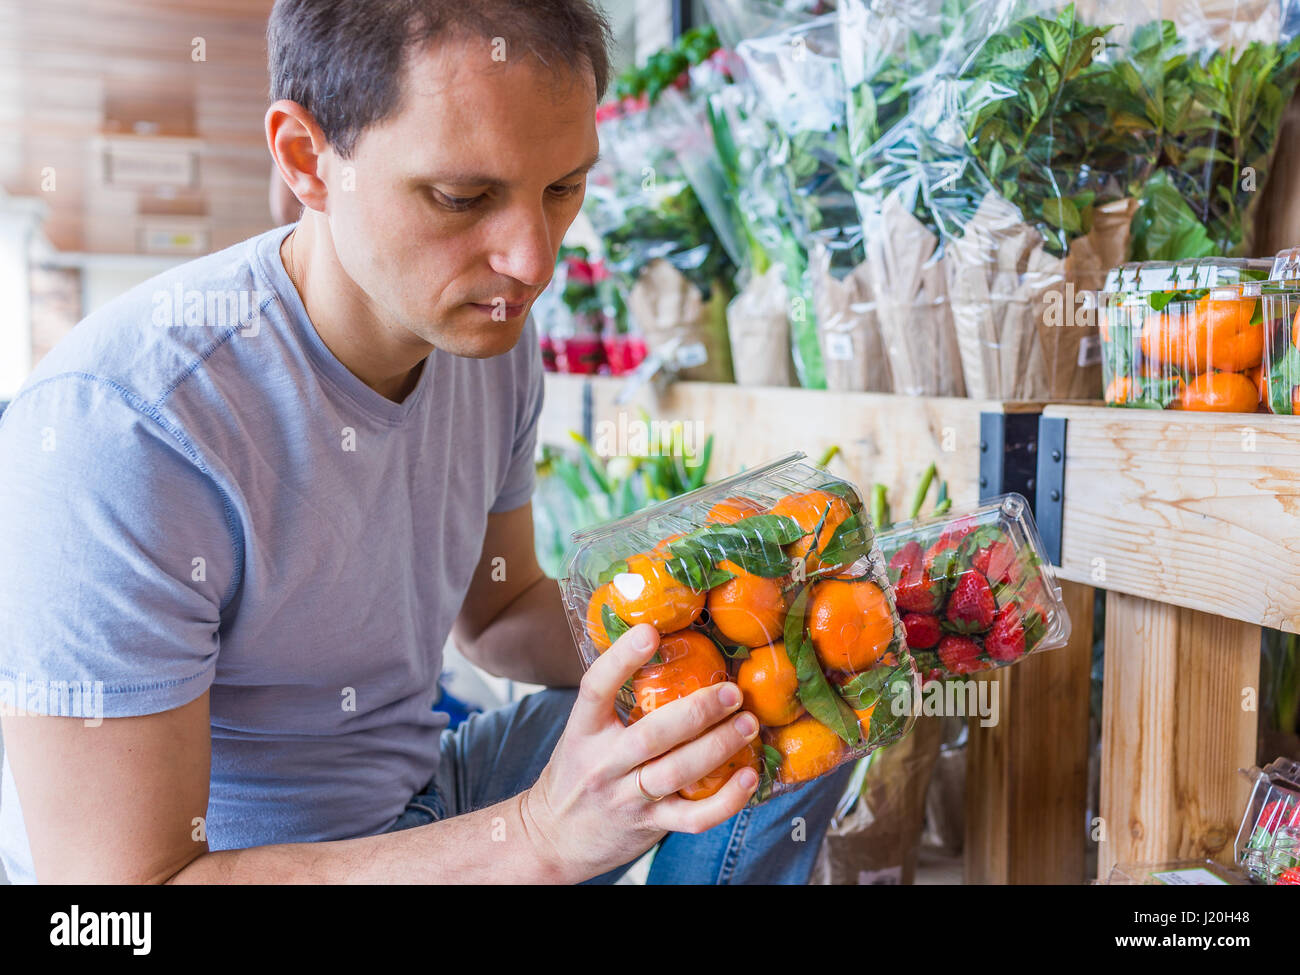 Young man picking holding plastic boxes with mandarin oranges in store - Stock Image